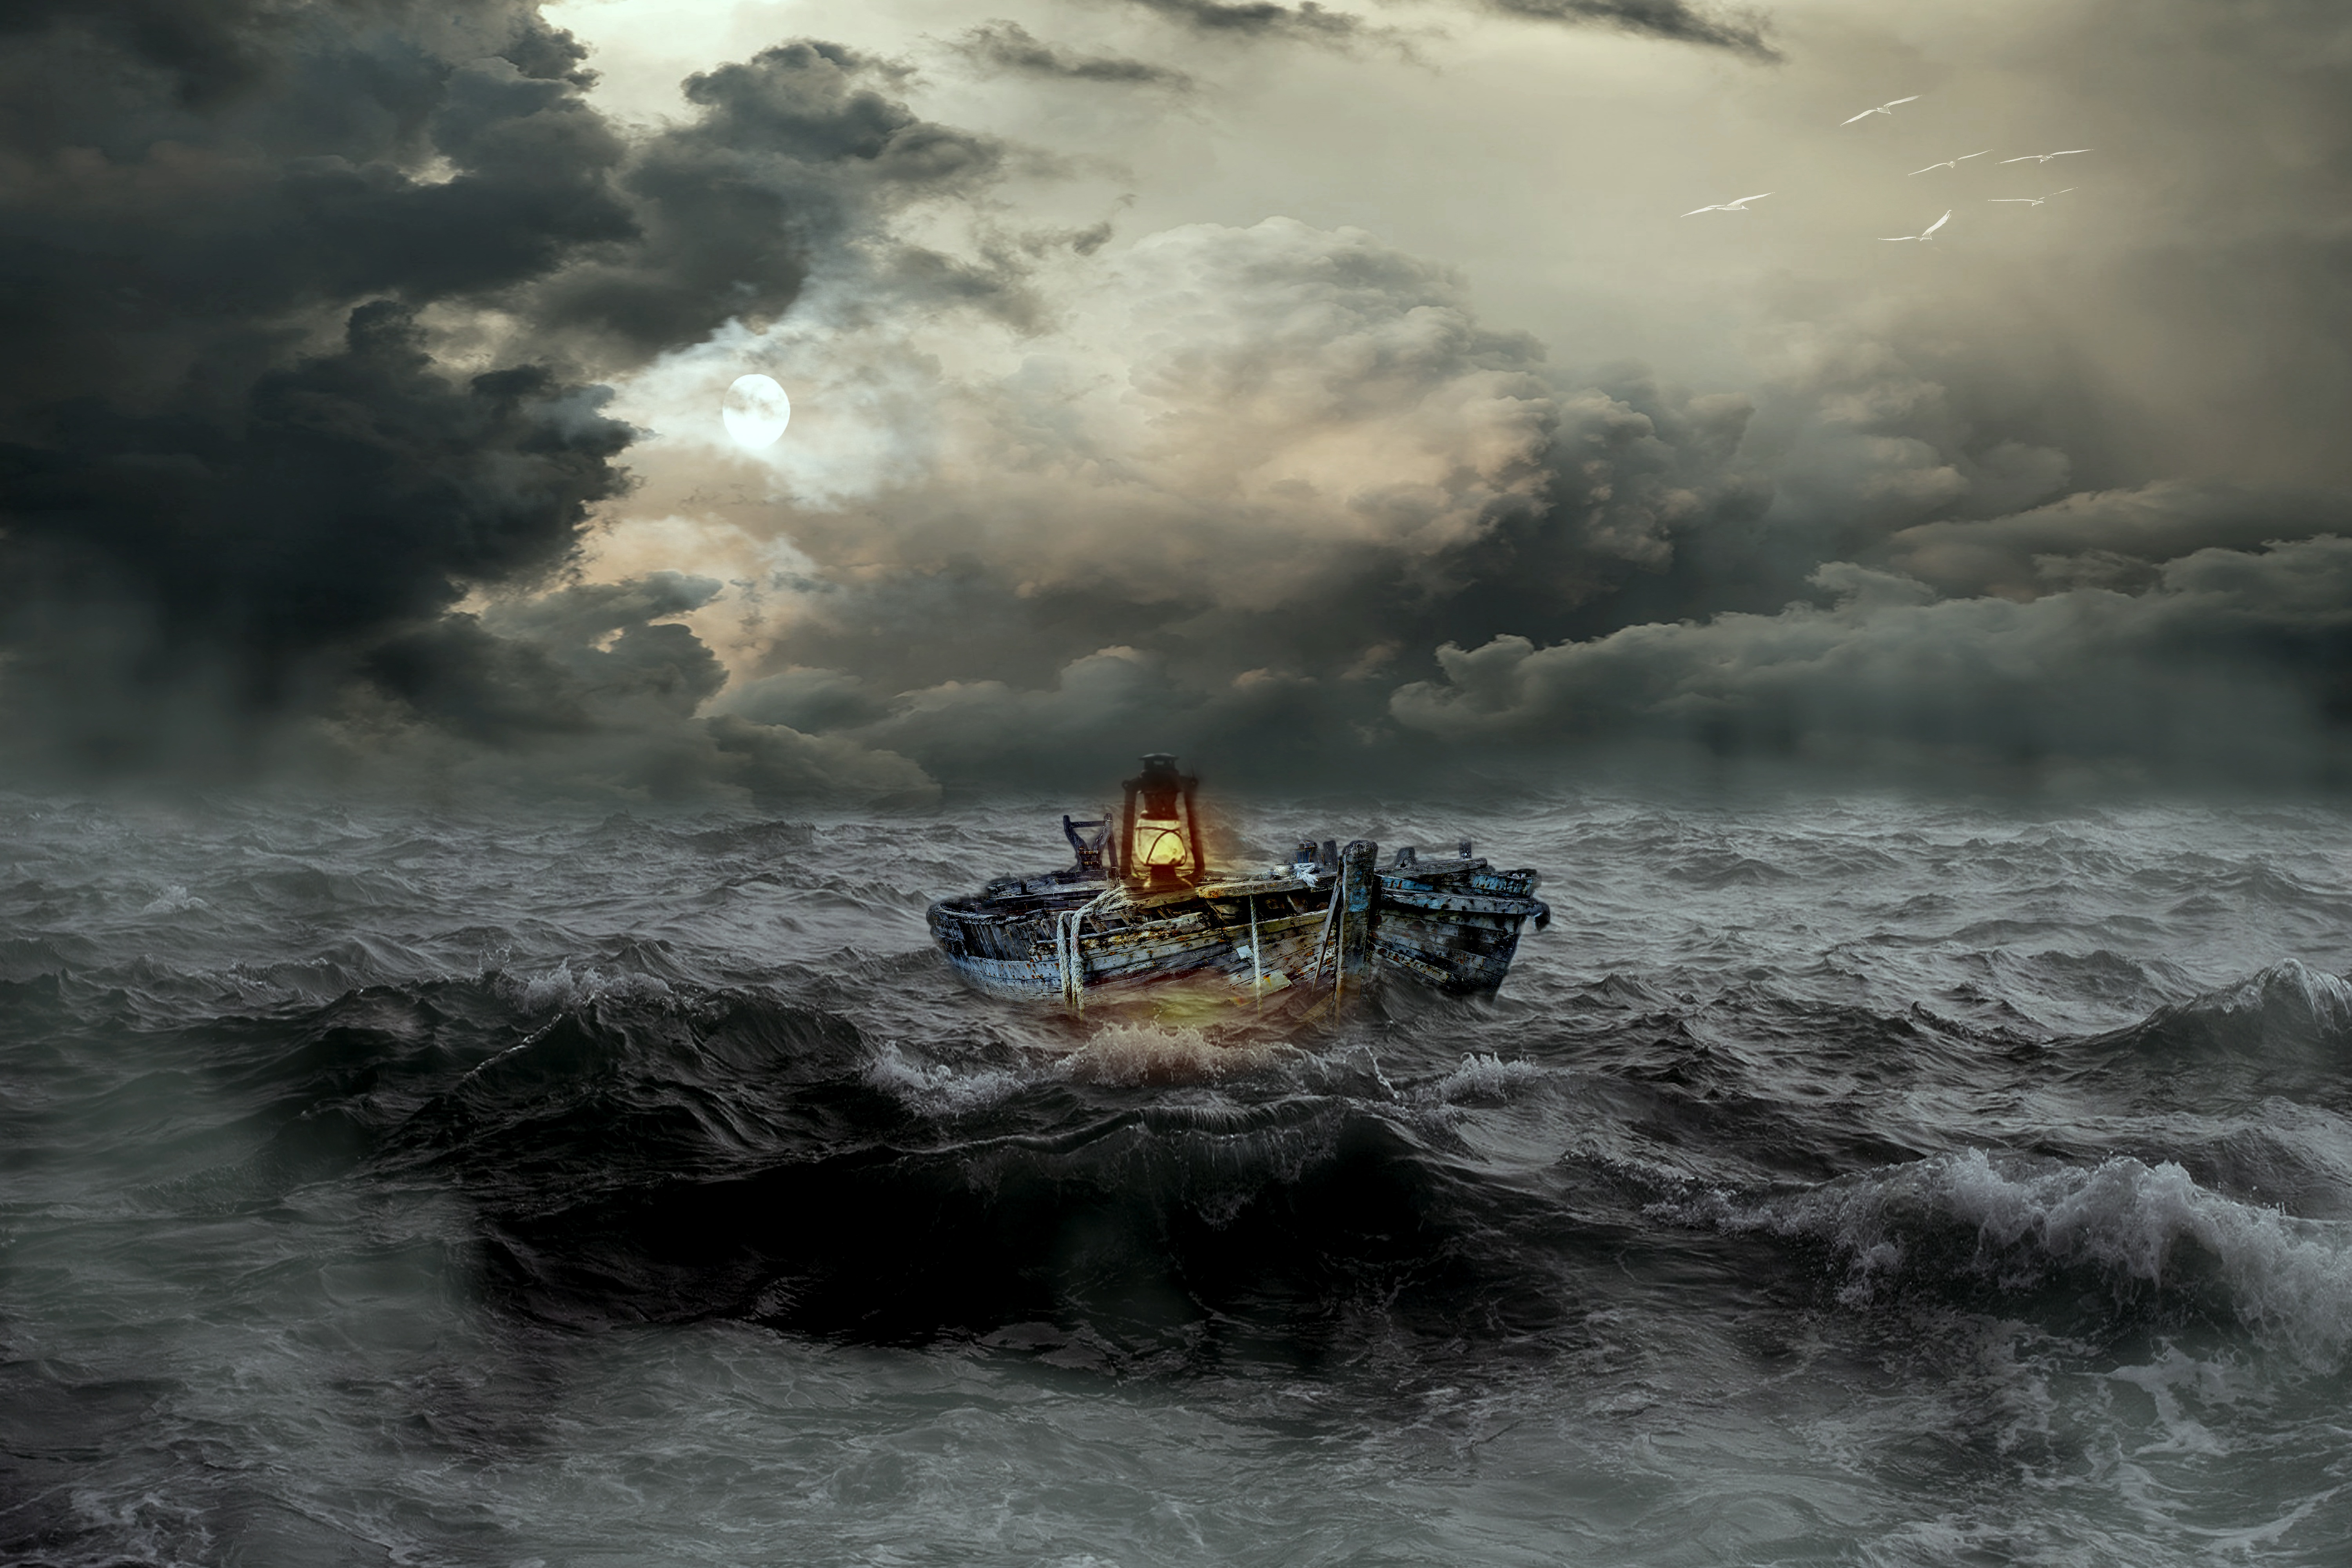 98128 download wallpaper Miscellanea, Miscellaneous, Boat, Storm, Sea, Mainly Cloudy, Overcast, Waves screensavers and pictures for free